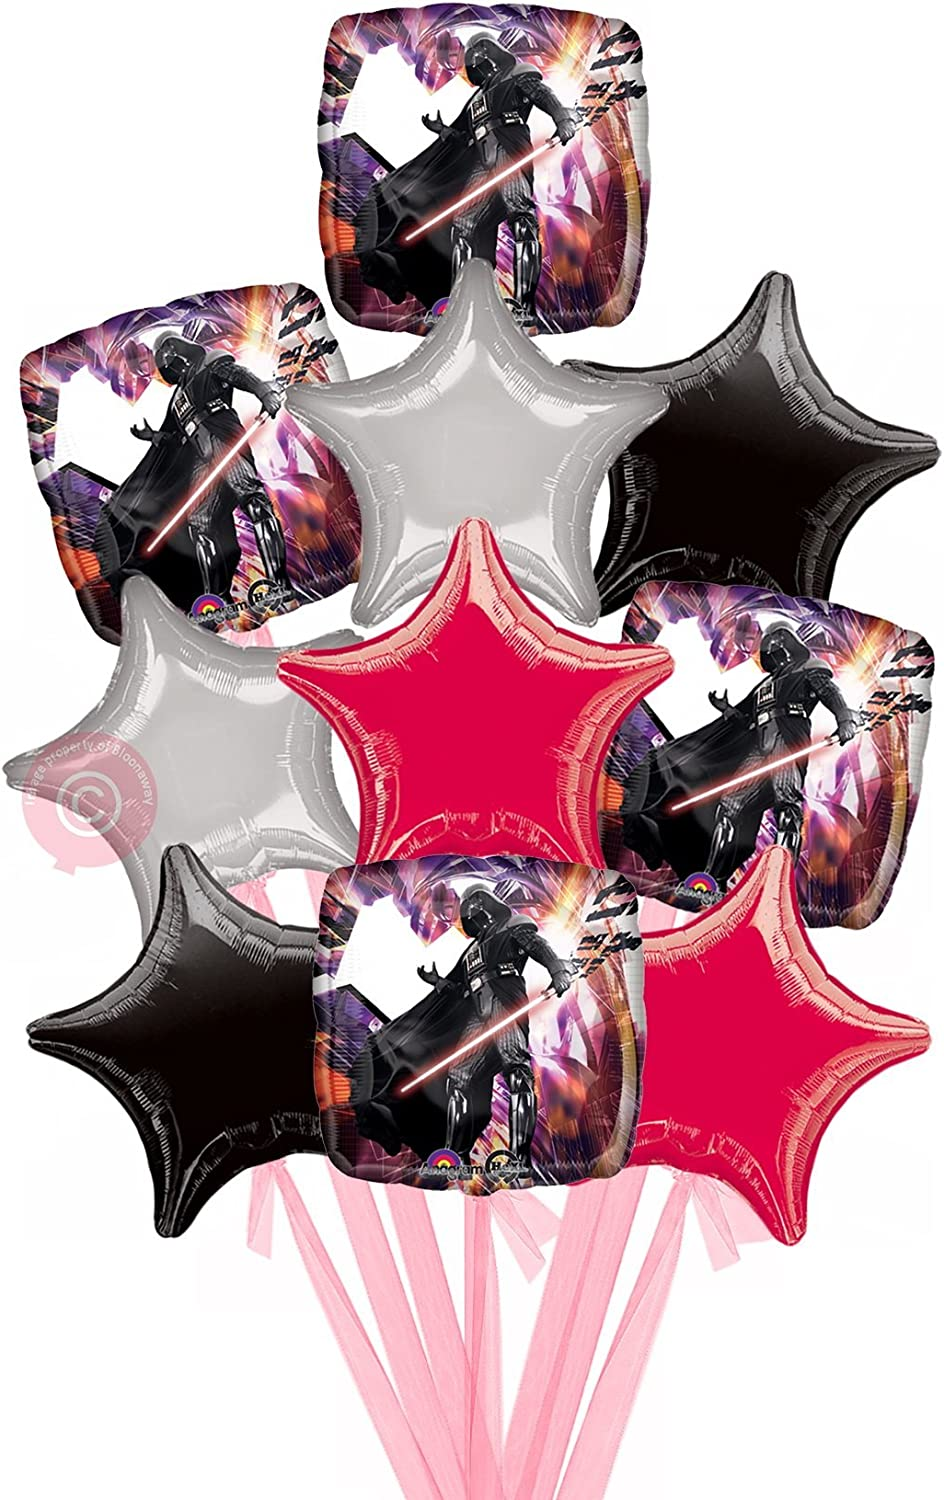 Star Wars Darth Vader  Inflated Helium Balloon Delivered in a Box  Biggest Bouquet  10 Balloons  Bloonaway